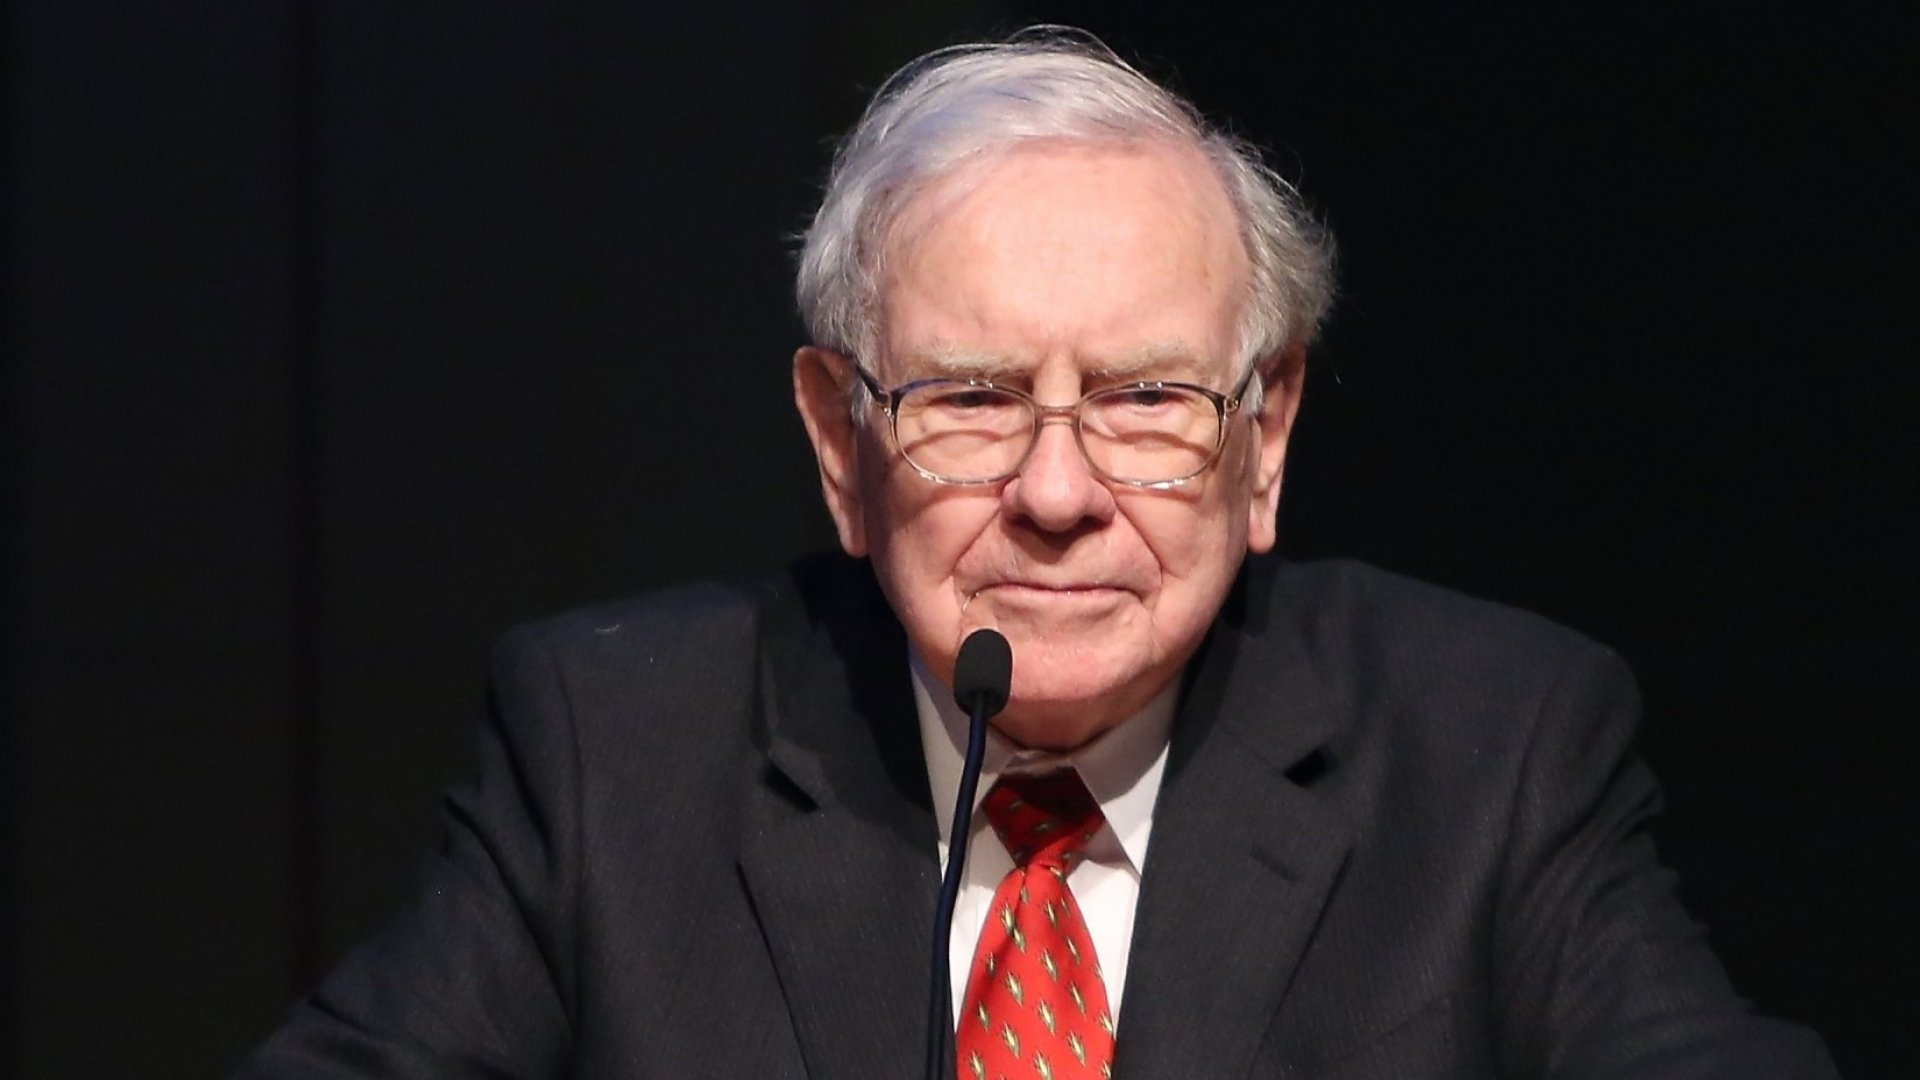 Warren Buffett's Response to the Pandemic Summarized in 4 Words